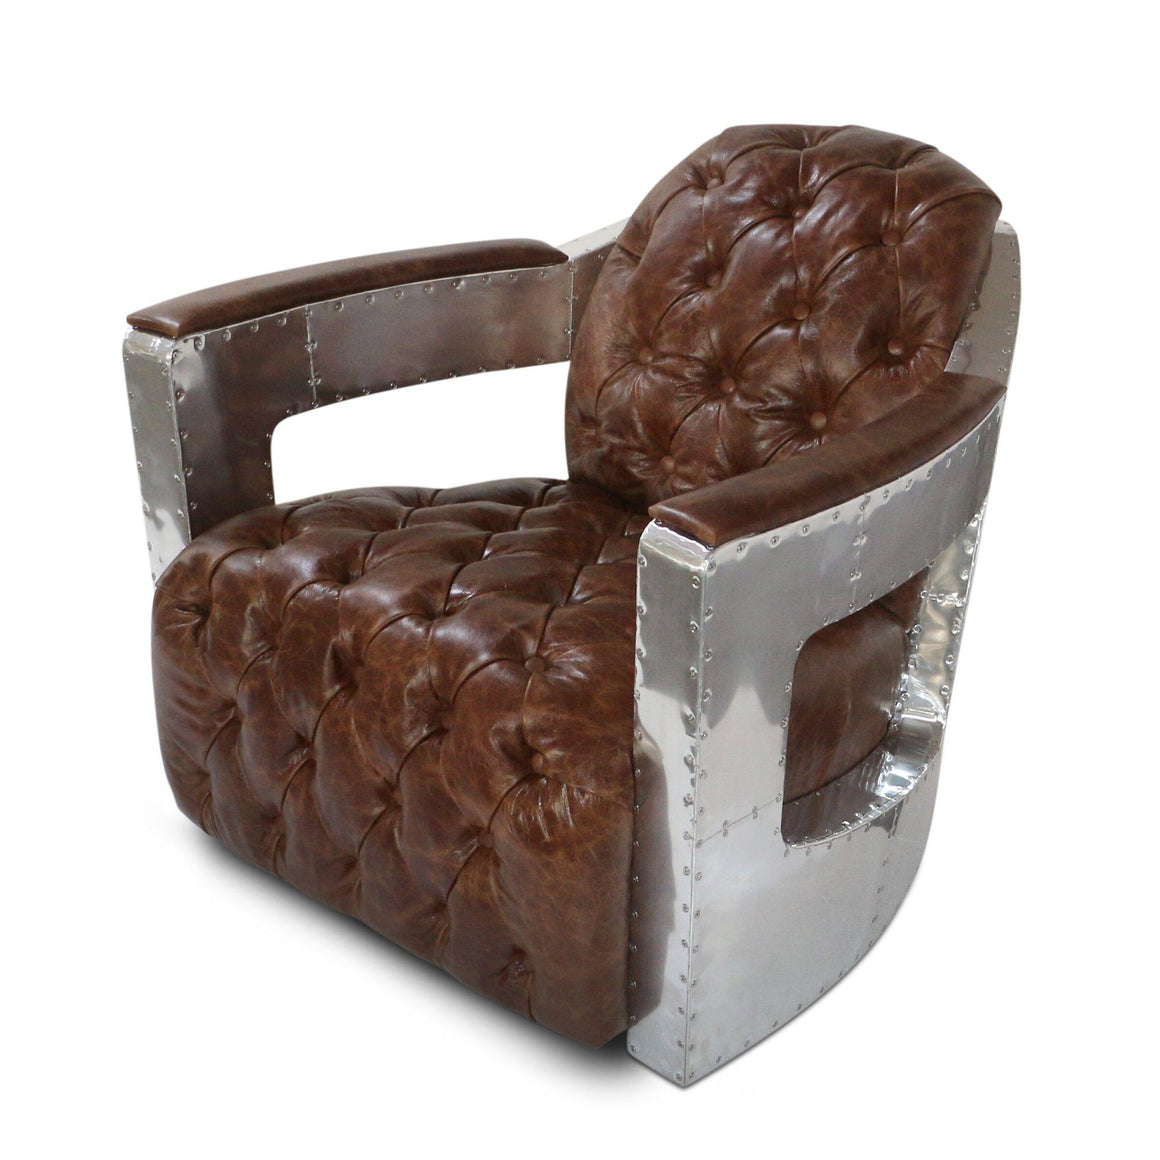 Aviator Spitfire Club Chair - Tufted Brown Genuine Leather - Aluminum-Rustic Deco Incorporated